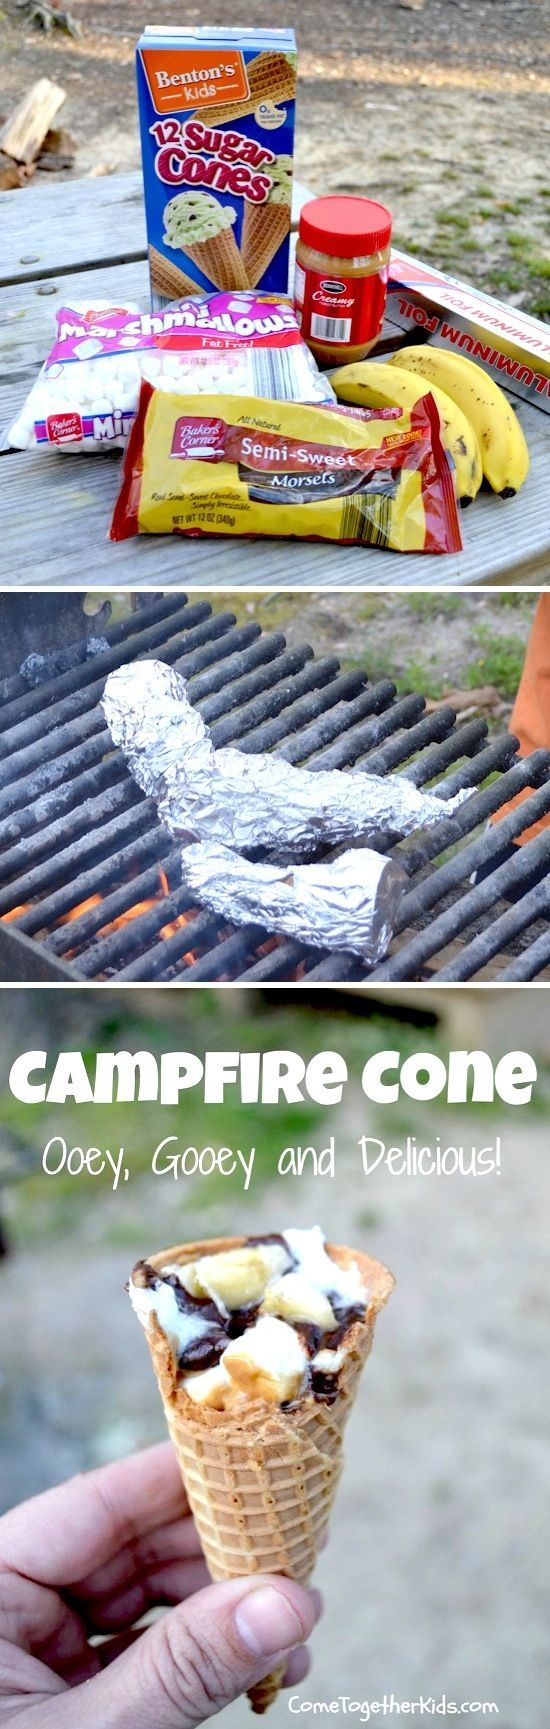 Campfire cones ...fun idea for fall. Just had a patient tell me about this as a great RVing treat. Let's stop working and break that RV in!!!!!